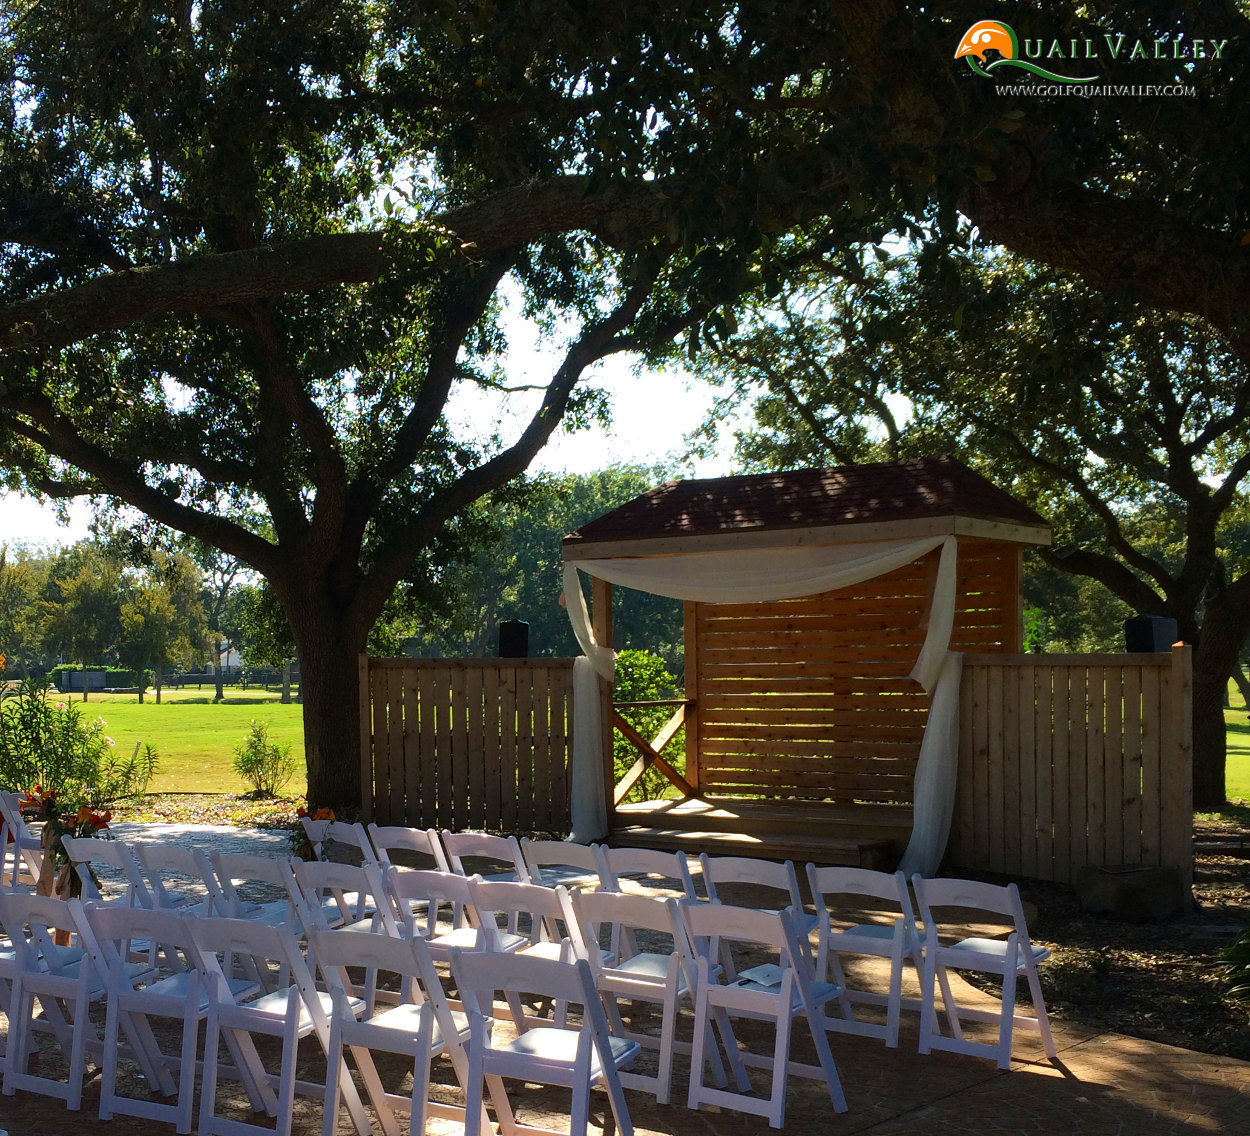 The Beautiful Wedding Venue At Quail Valley In Houston Tx